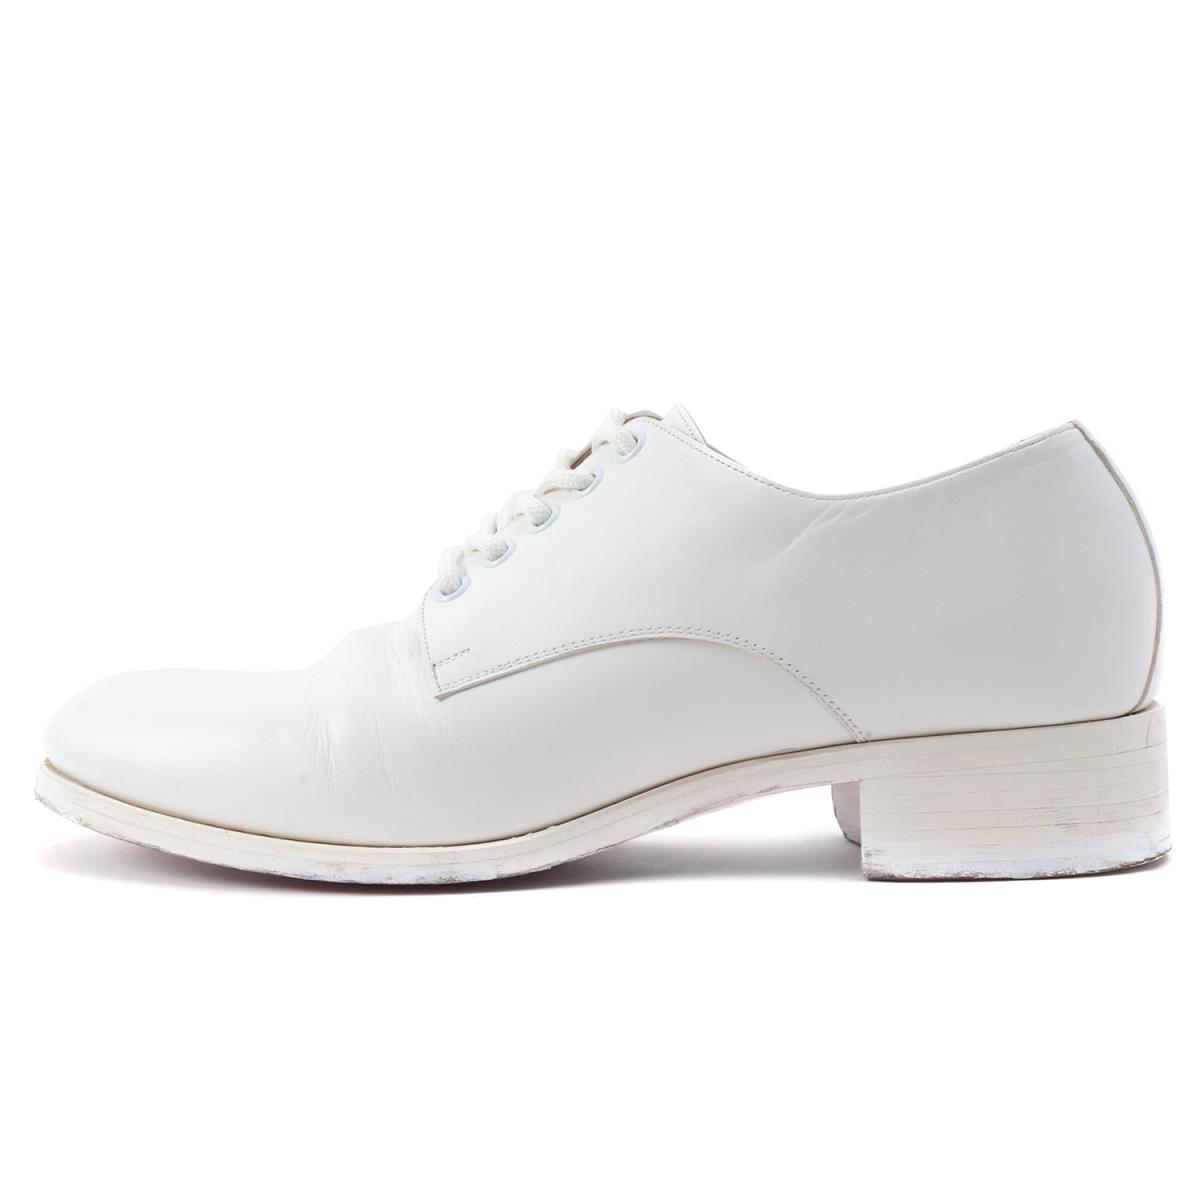 the latest c44d4 d813a Christian Louboutin (クリスチャンルブタン) leather race up shoes white 40